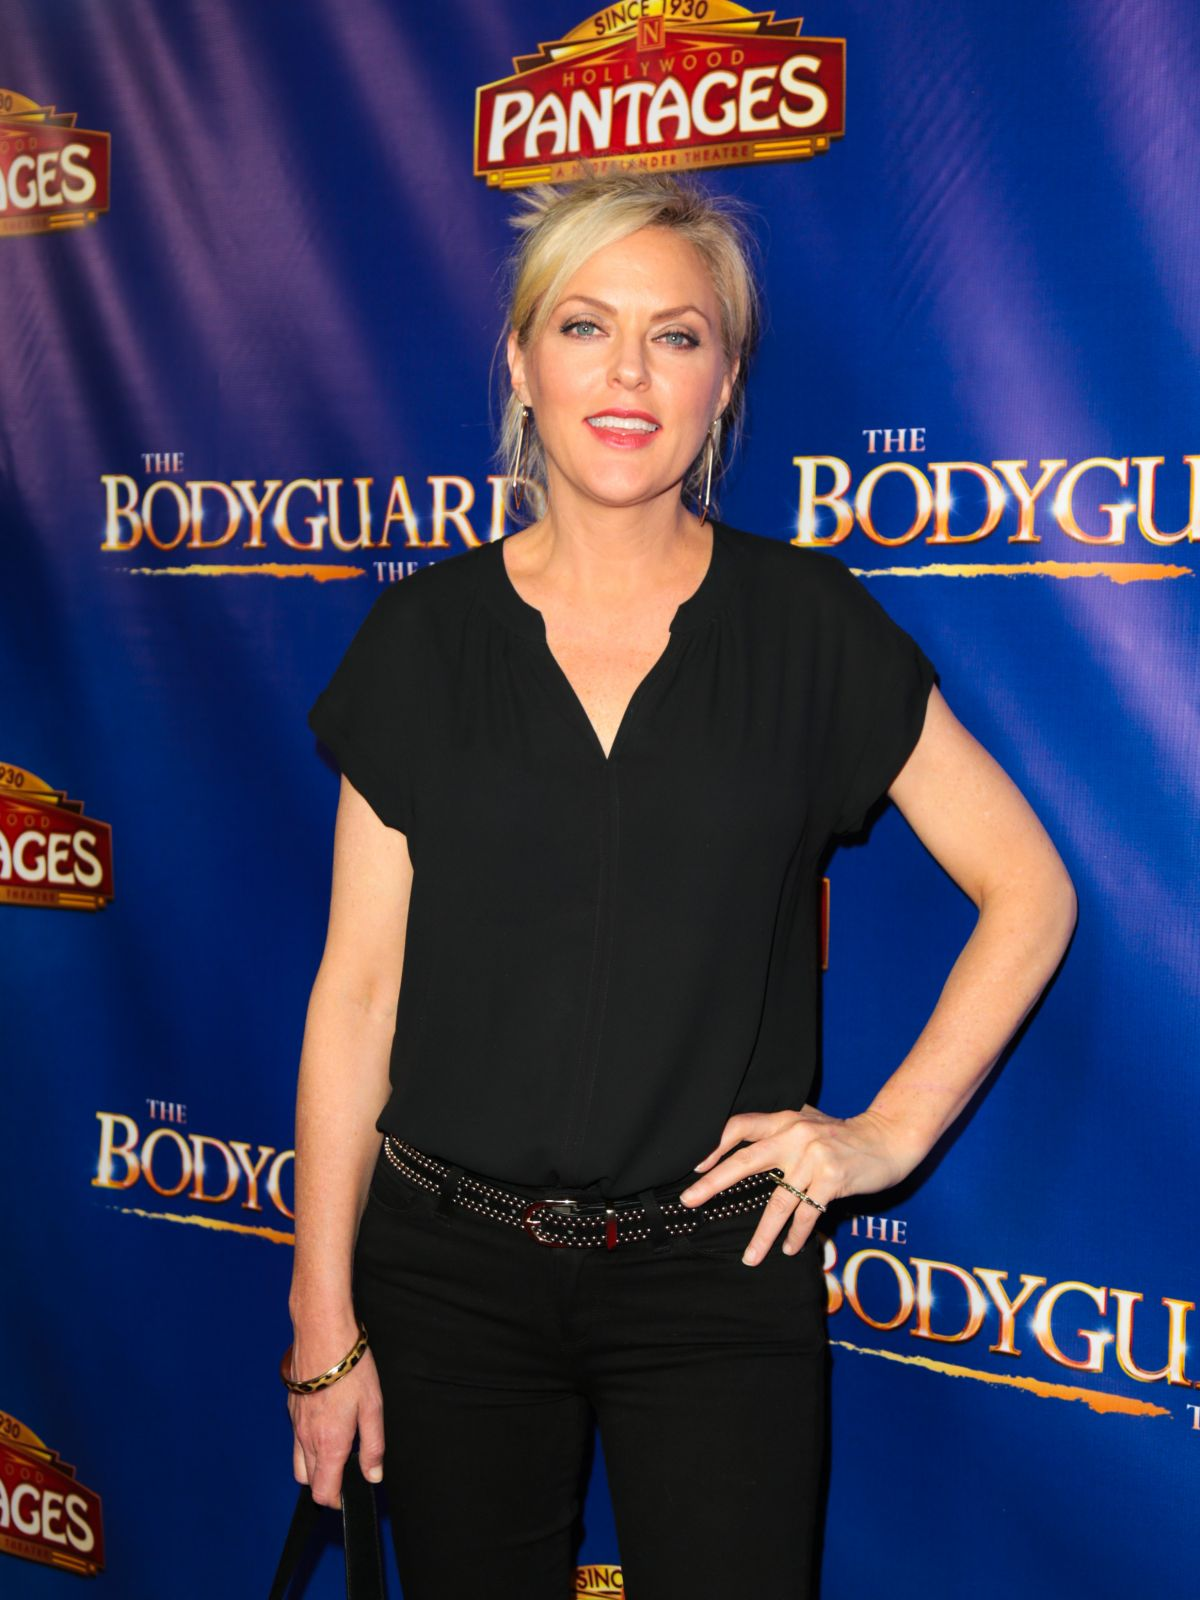 ELAINE HENDRIX at The Bodyguard Opening Night in Los Angeles 05/02/2017